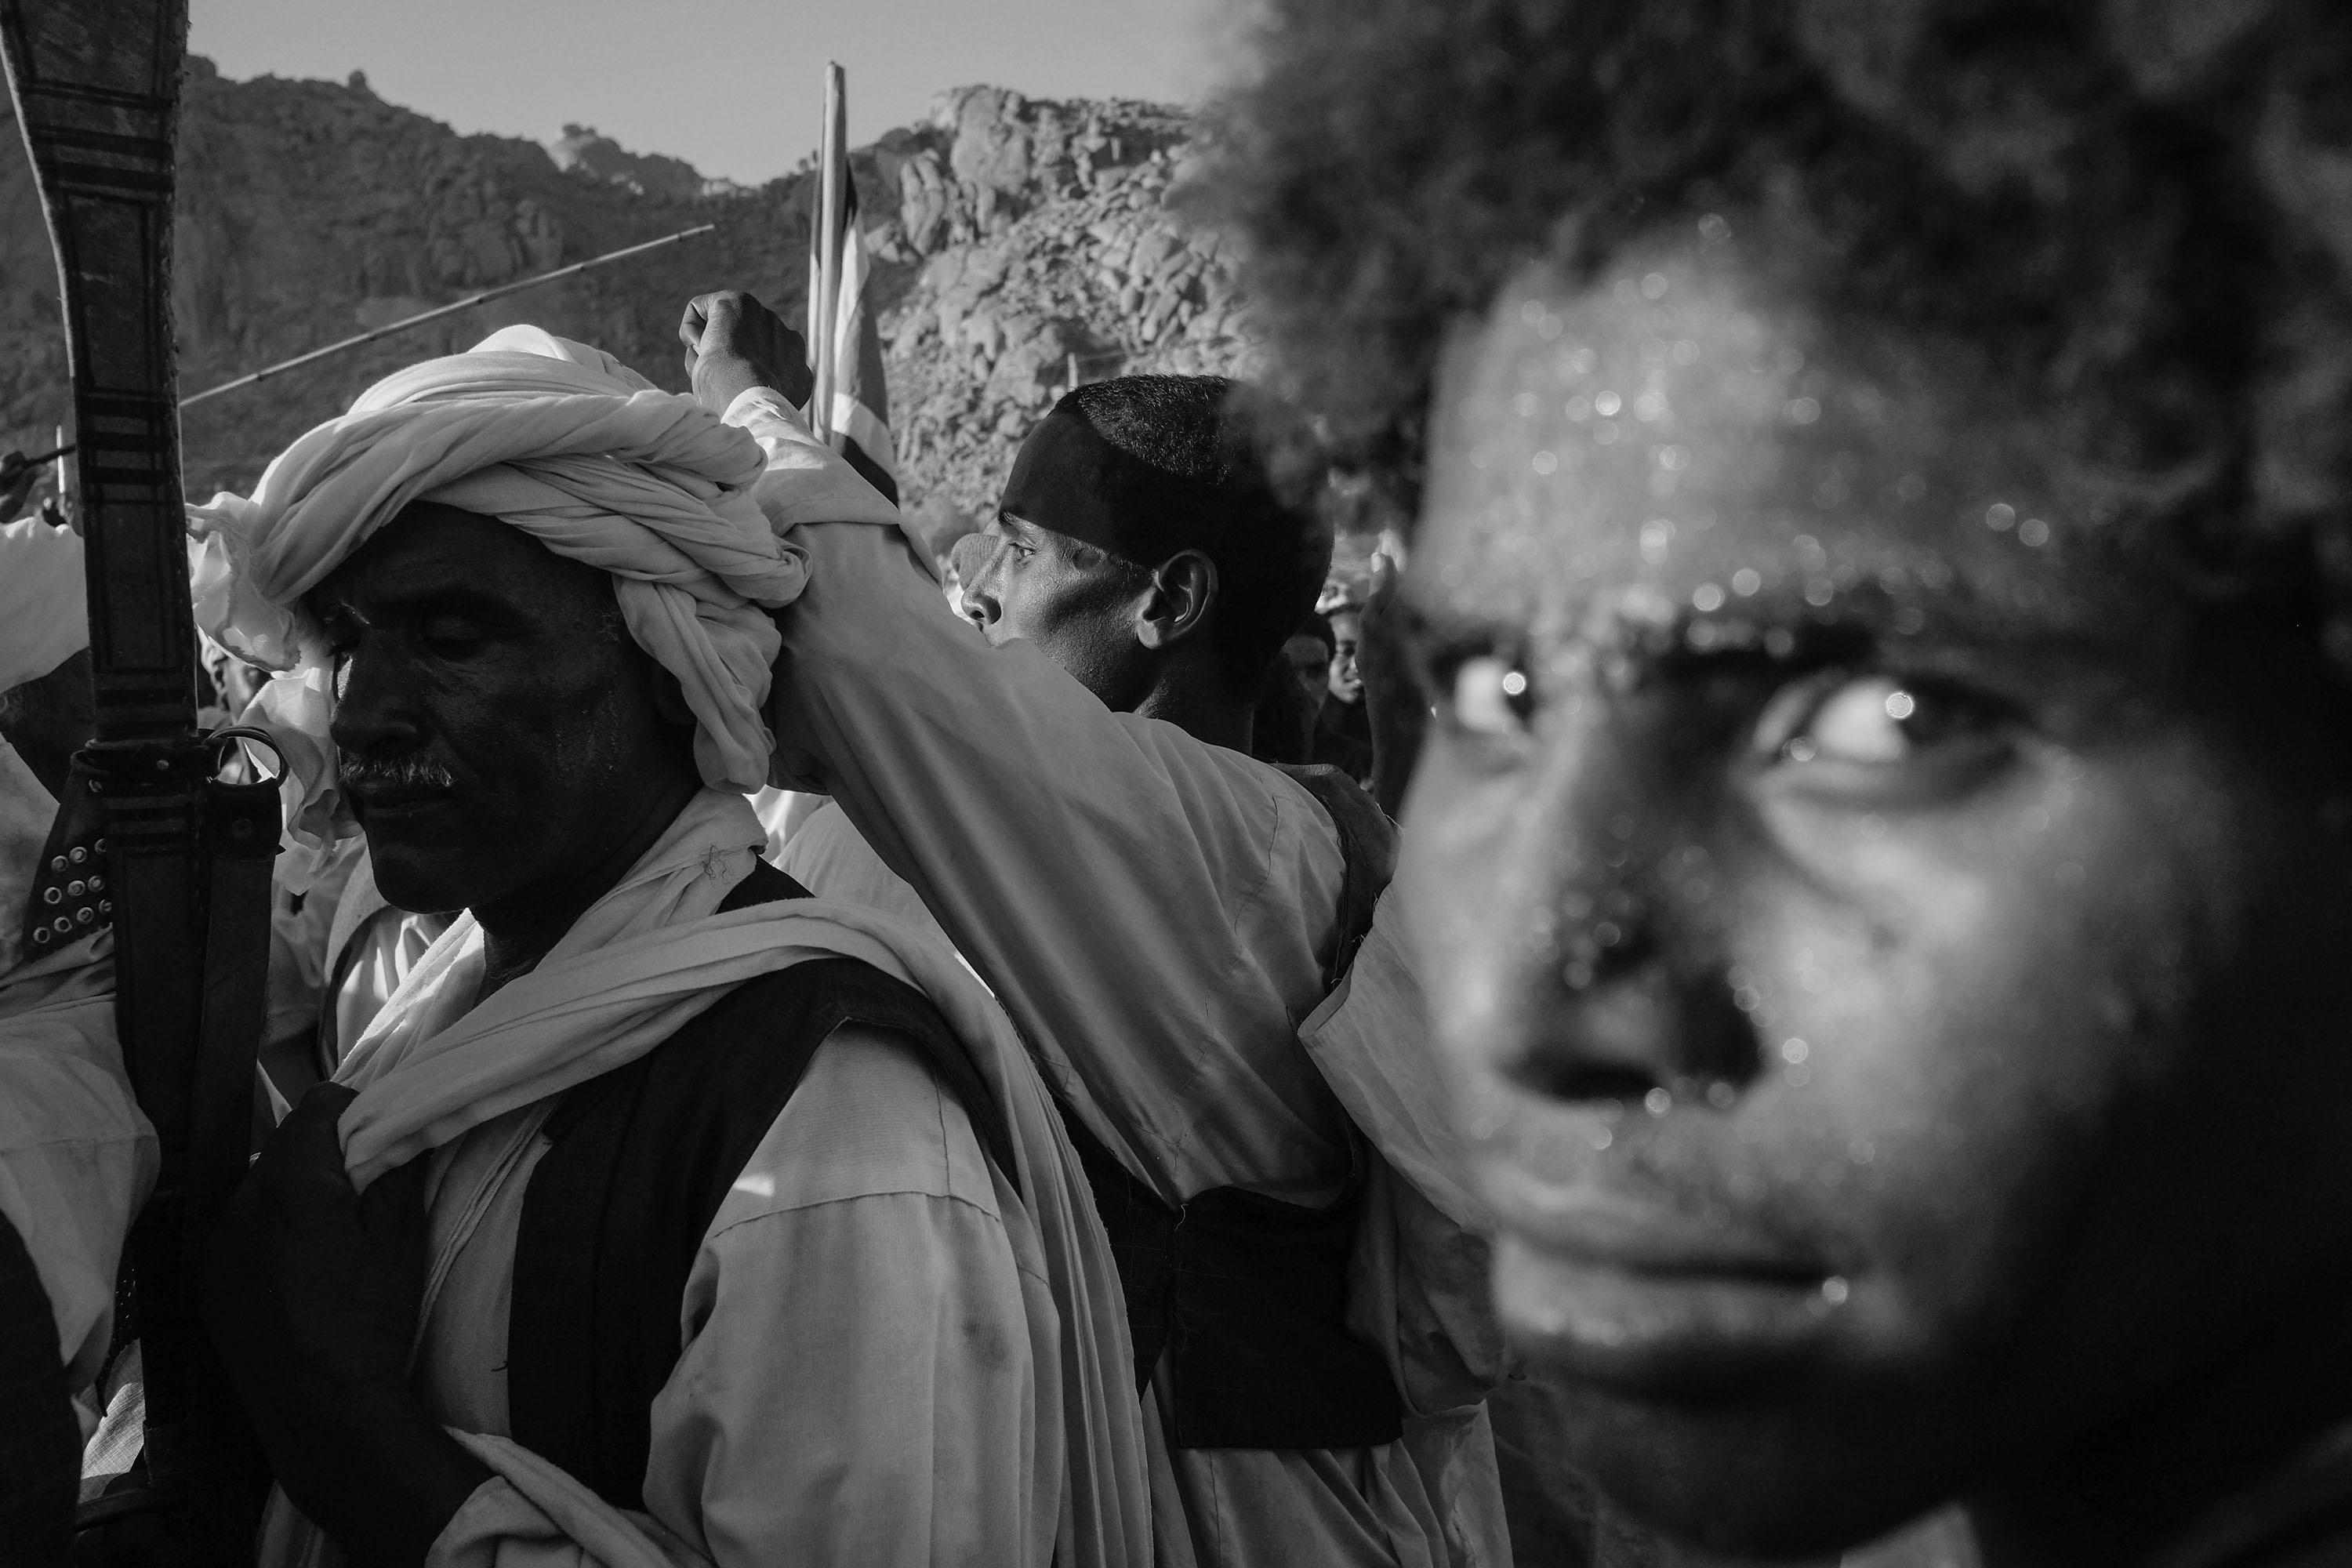 24. Sweat covers the faces of the most active dancers of the Sufi gathering. Kassala. Sudan. 2017